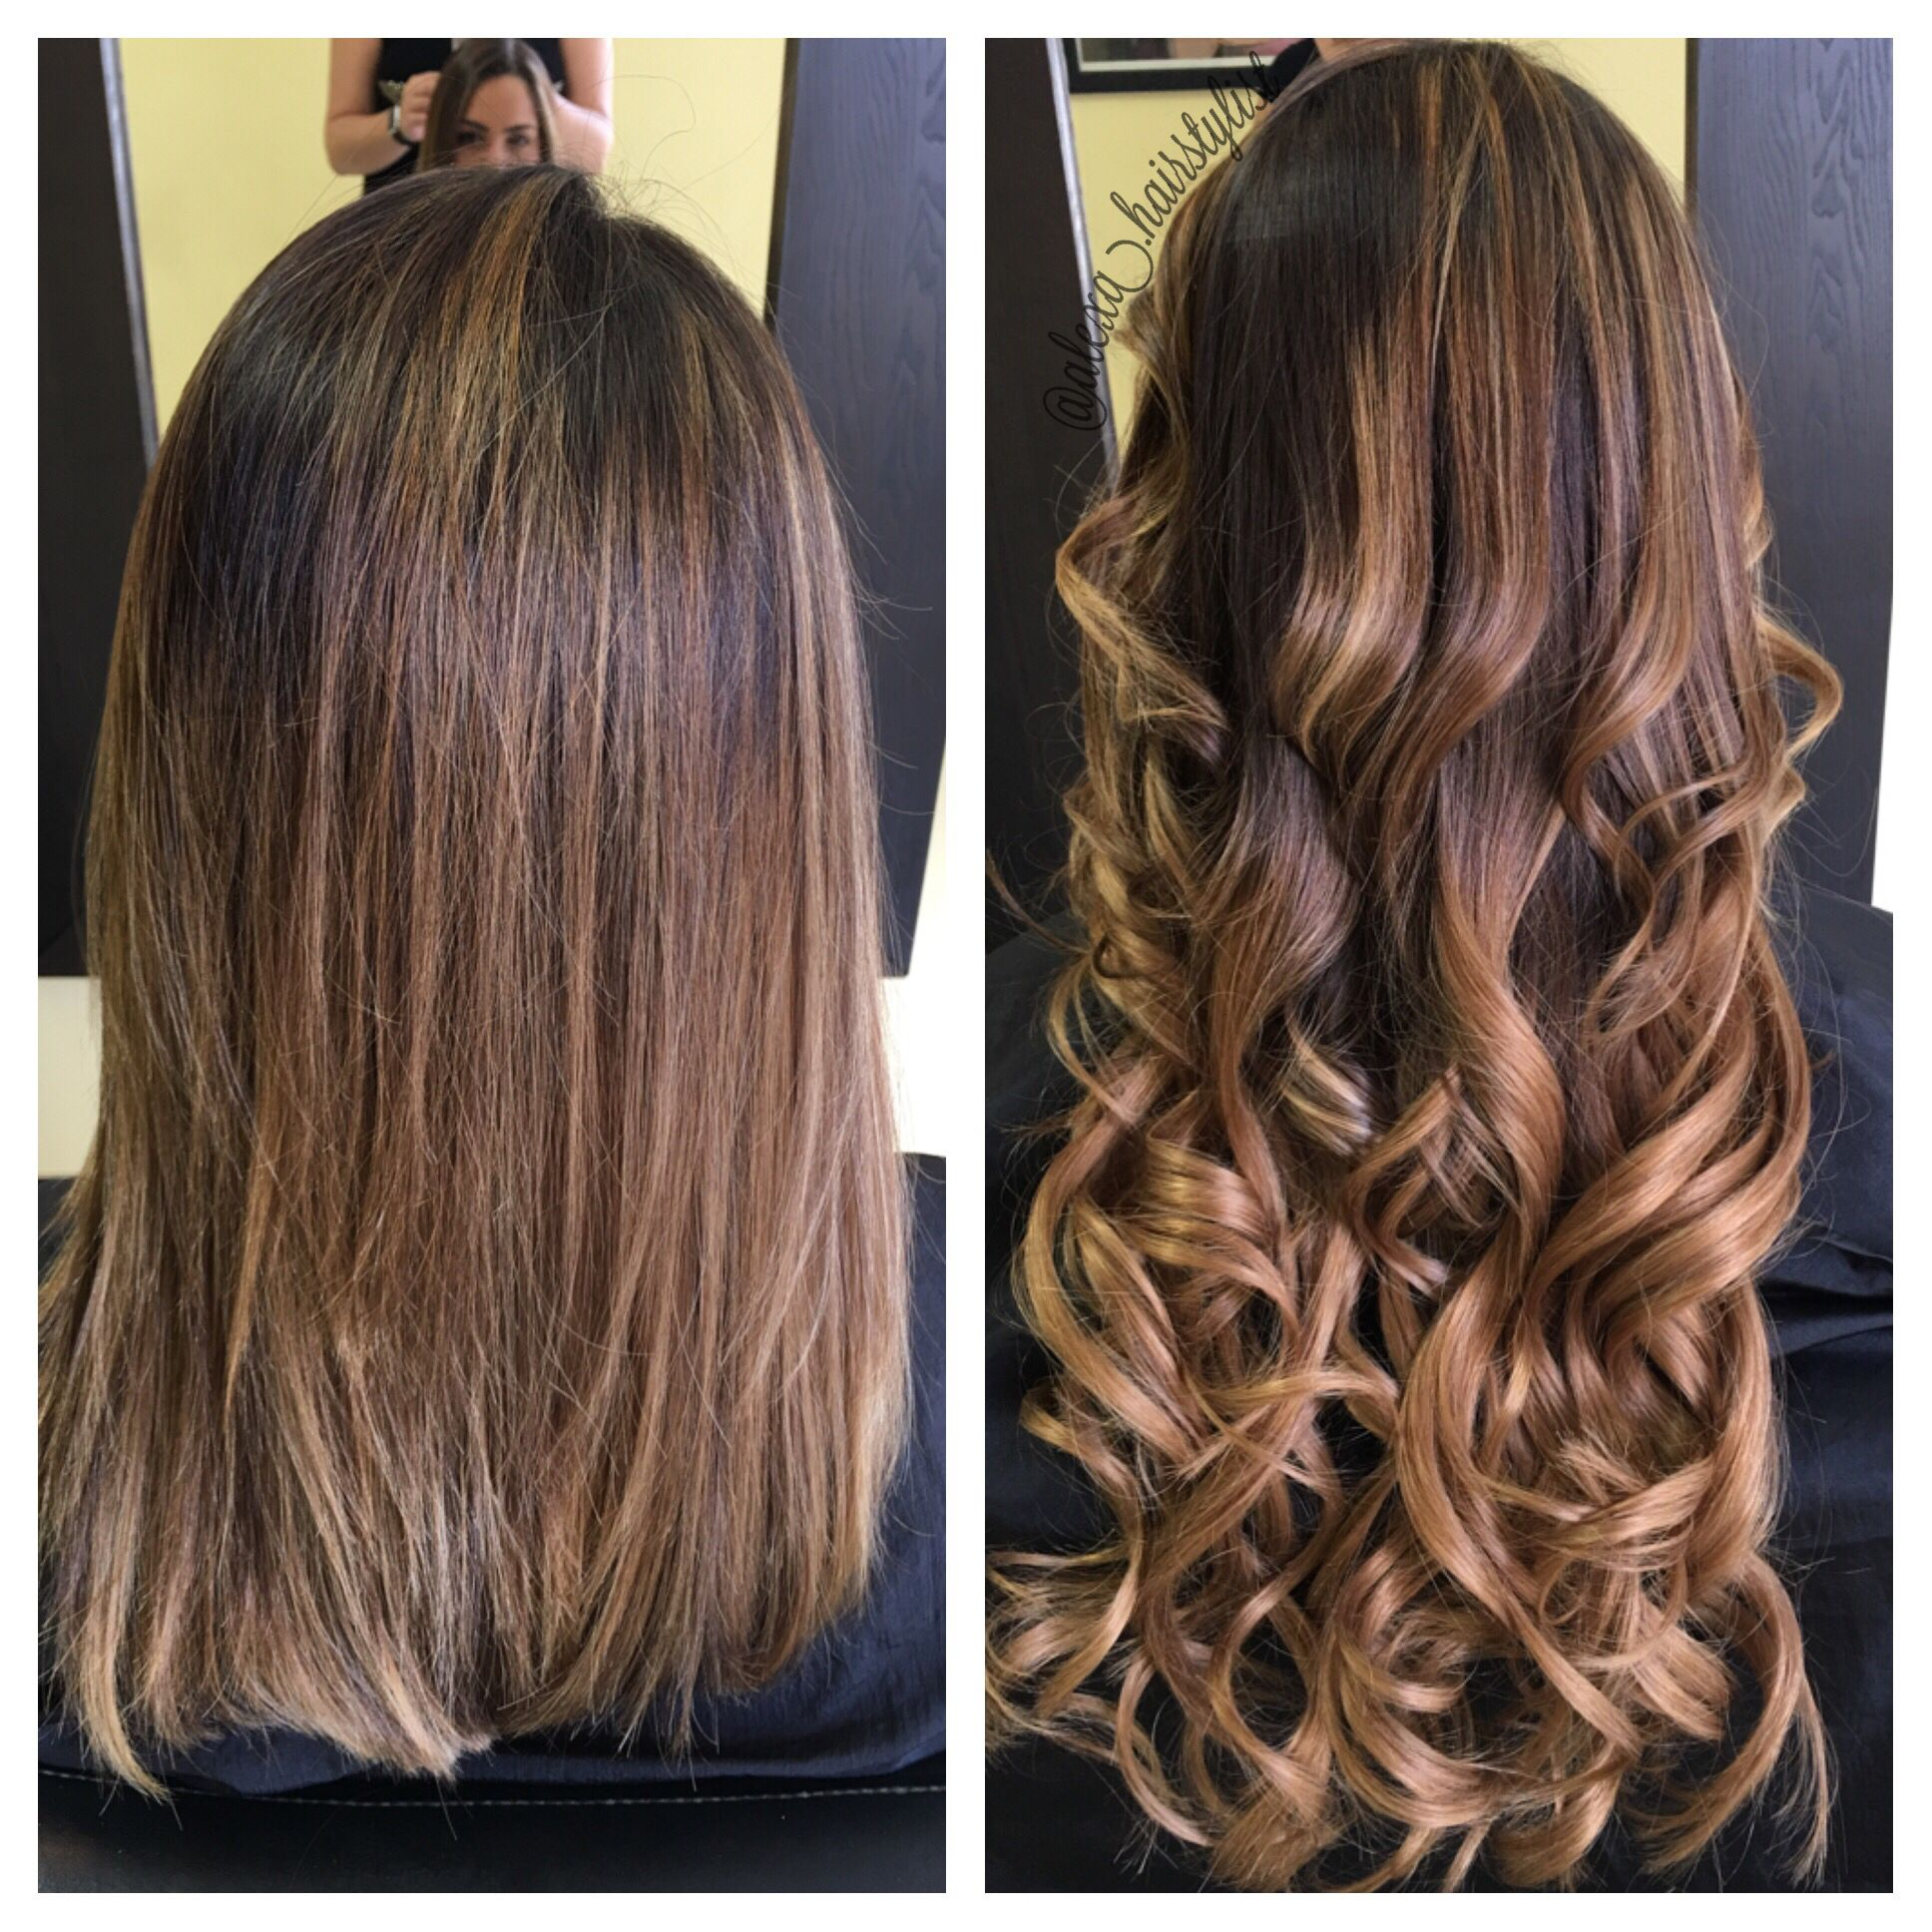 Before And After Tape In Extensions 20 22 Inches With Images